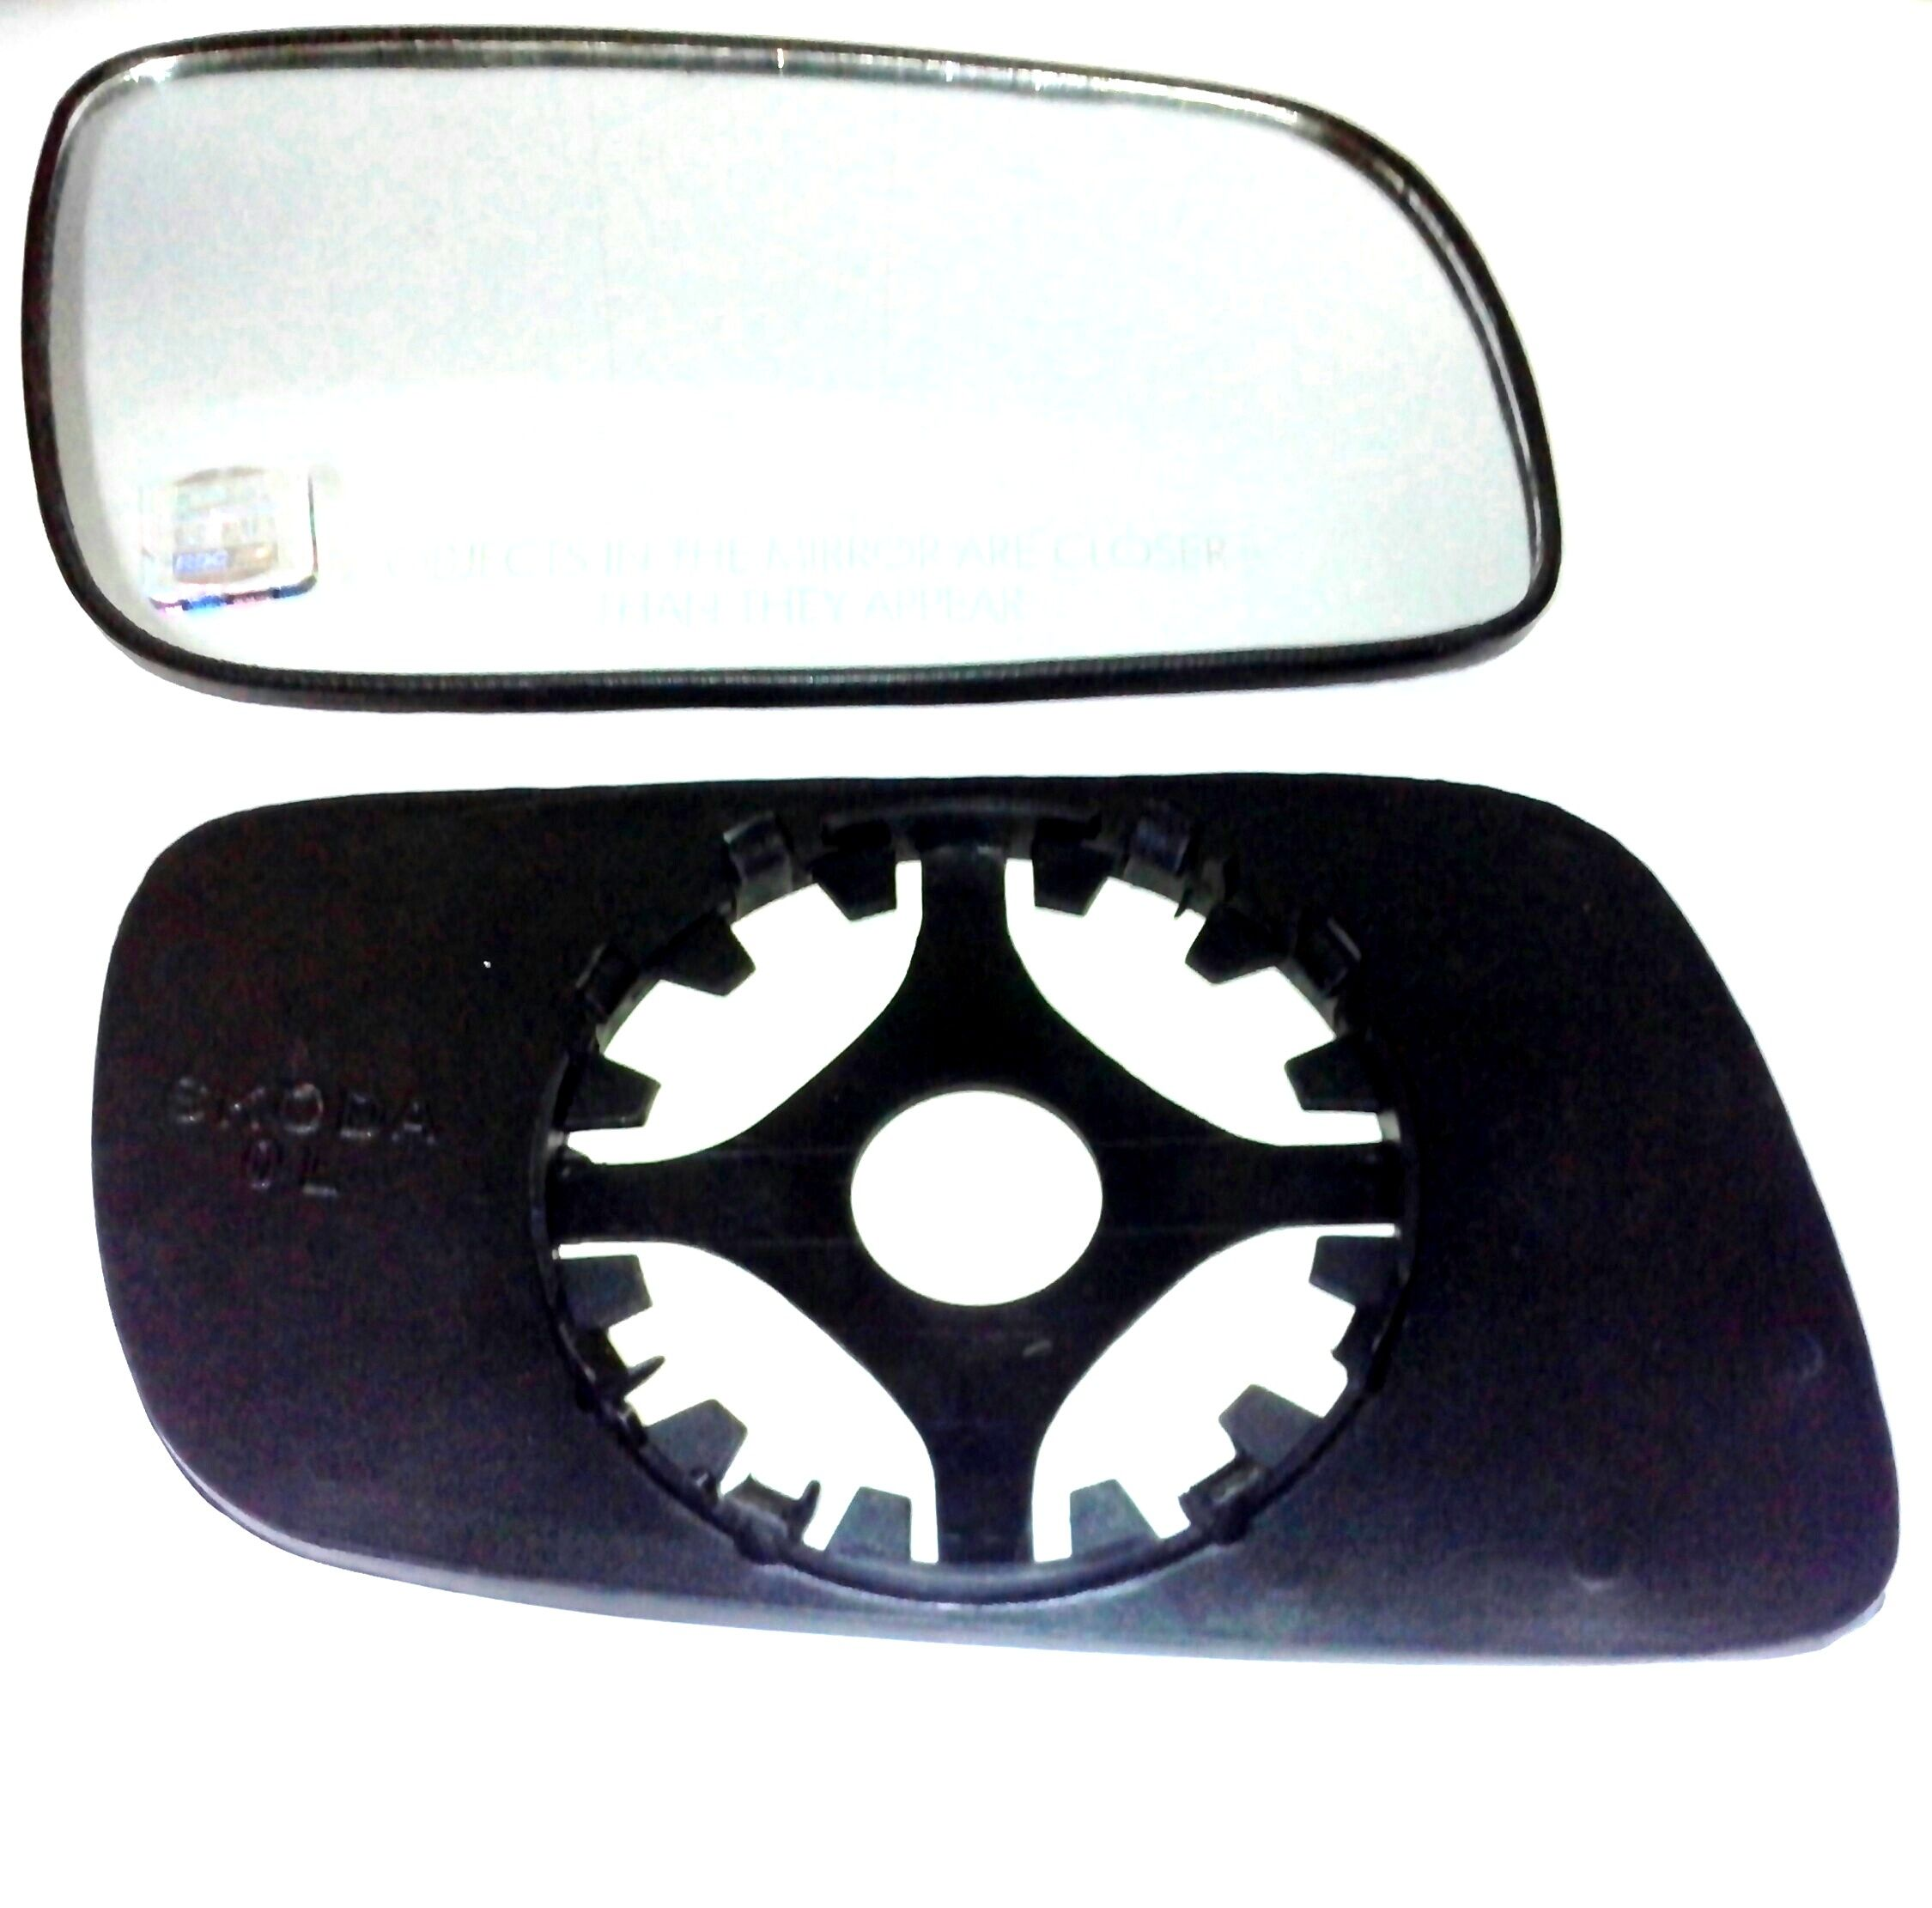 MANTRA-CONVEX MIRROR PLATES (SUB MIRROR PLATES) FOR TATA SAFARI 2X2 T-3 LEFT SIDE